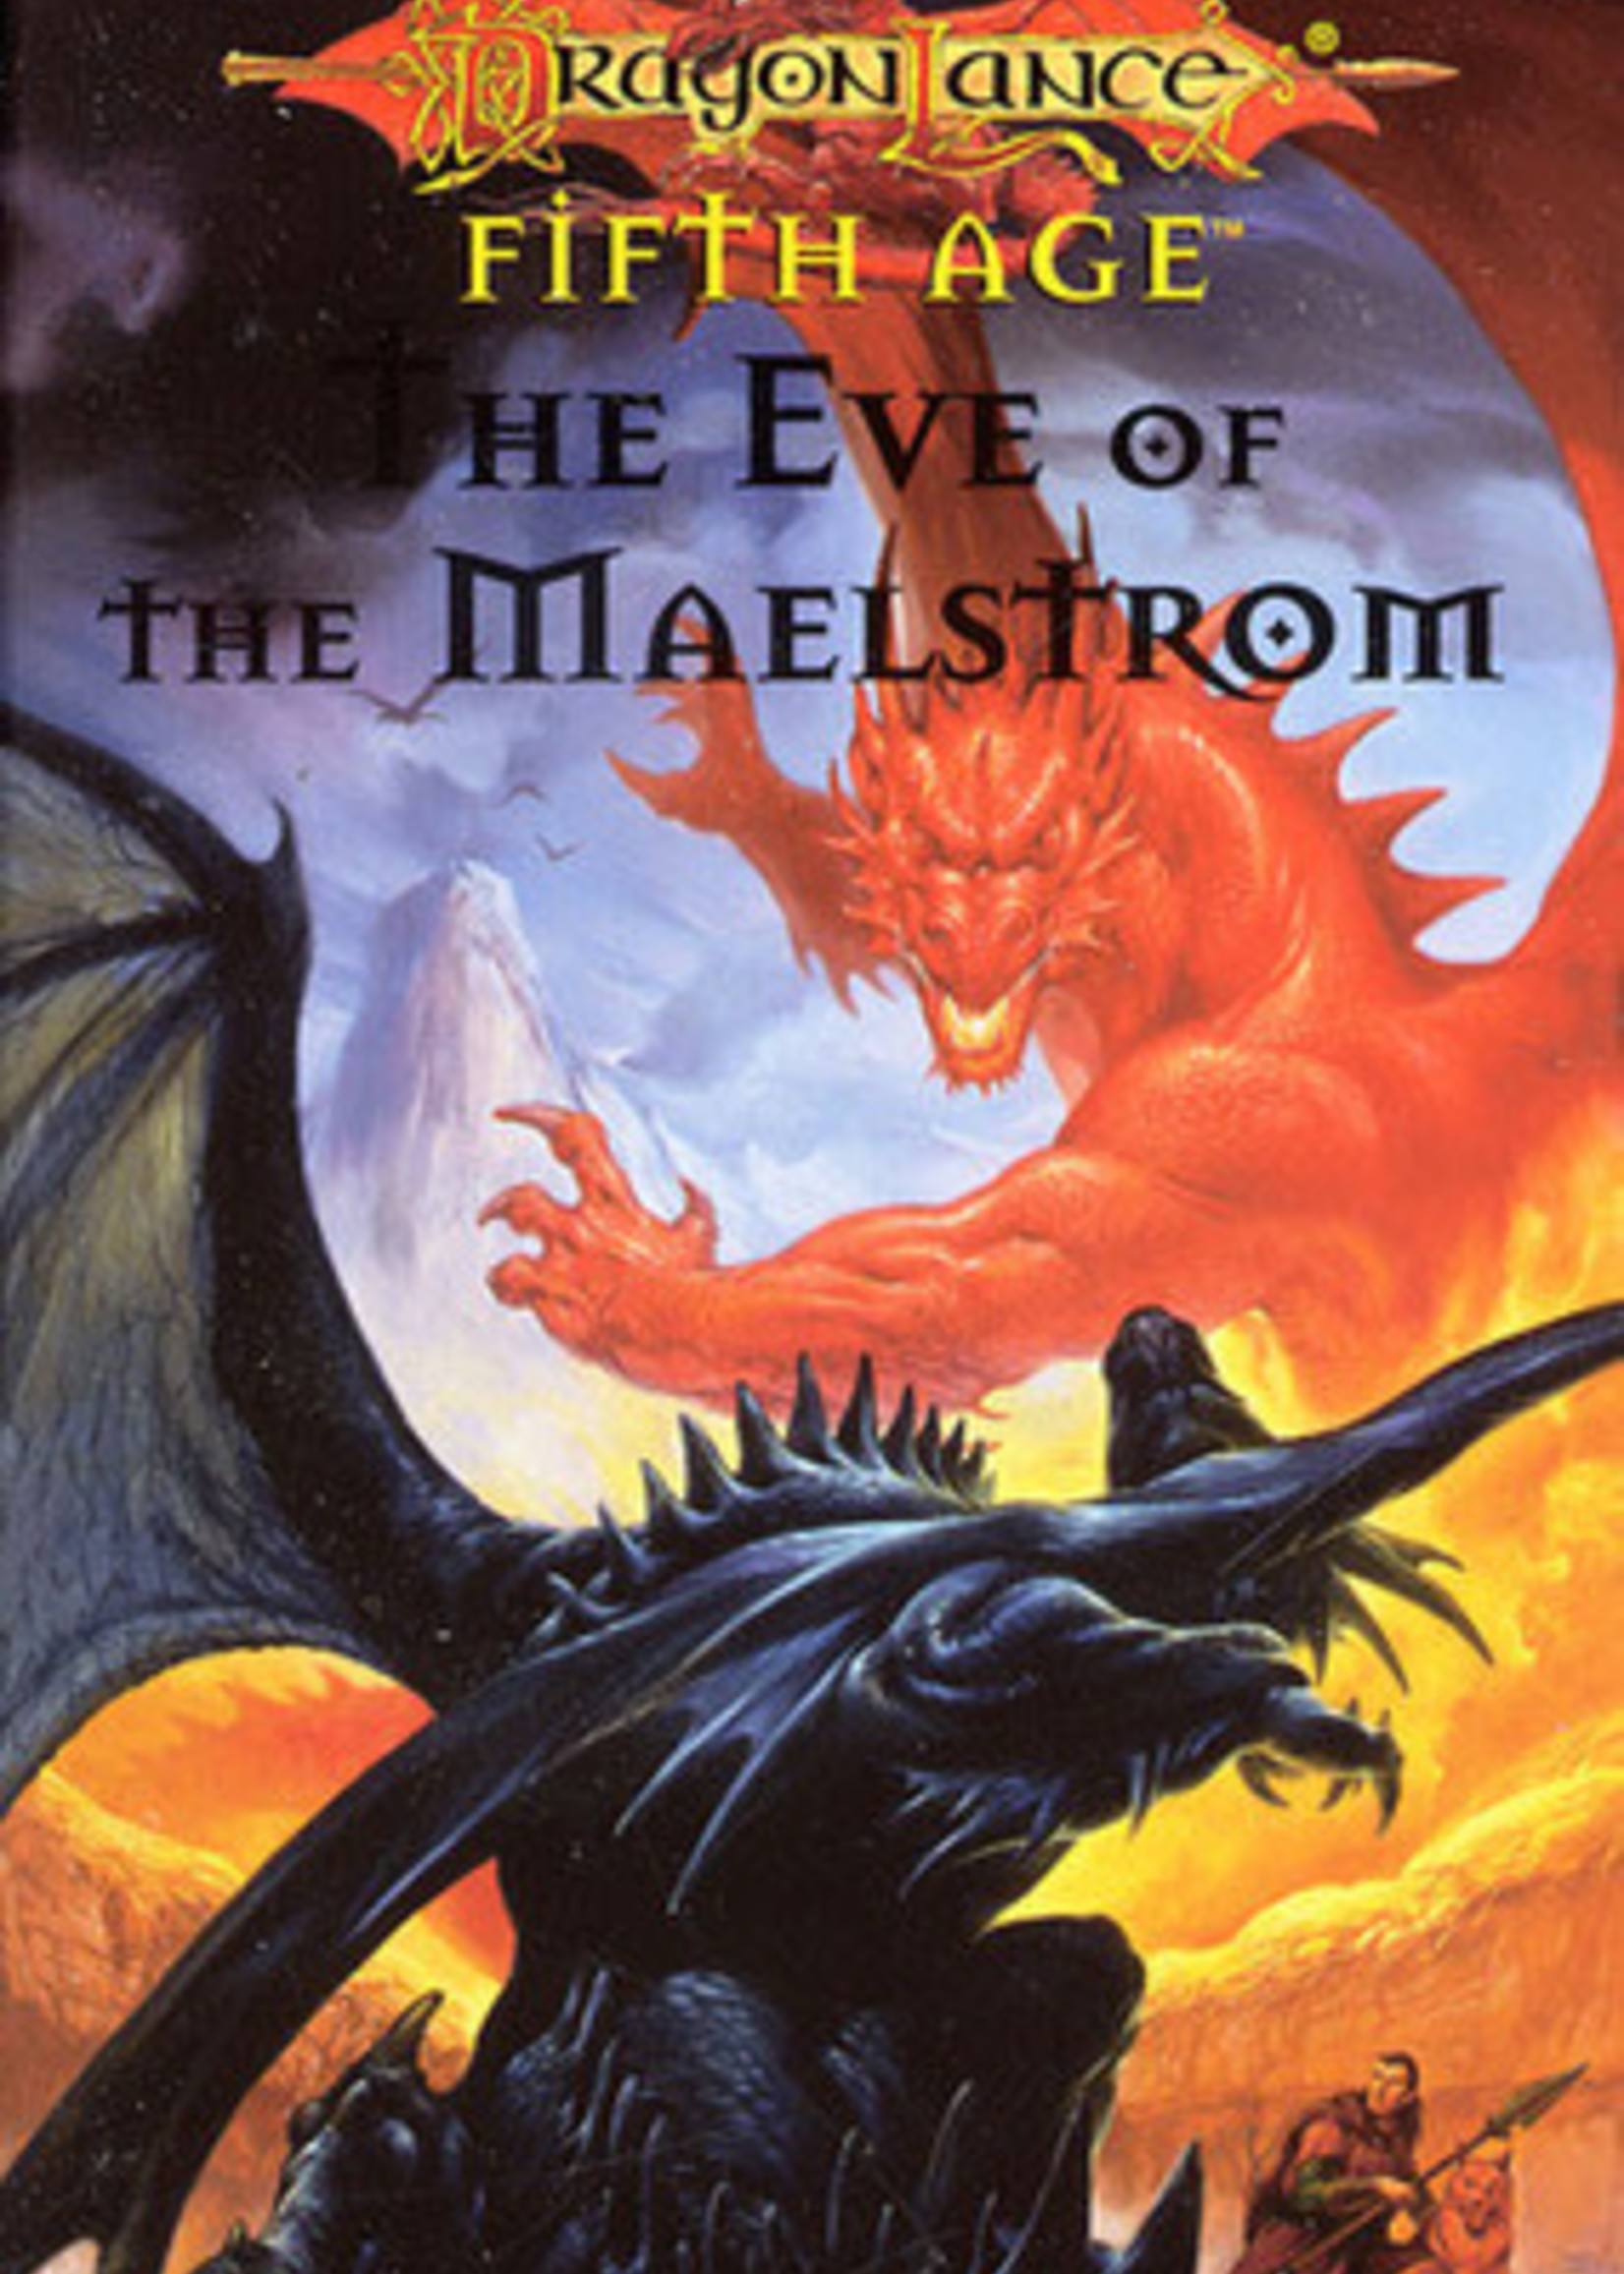 The Eve of the Maelstrom (Dragonlance: Dragons of a New Age #3) by Jean Rabe